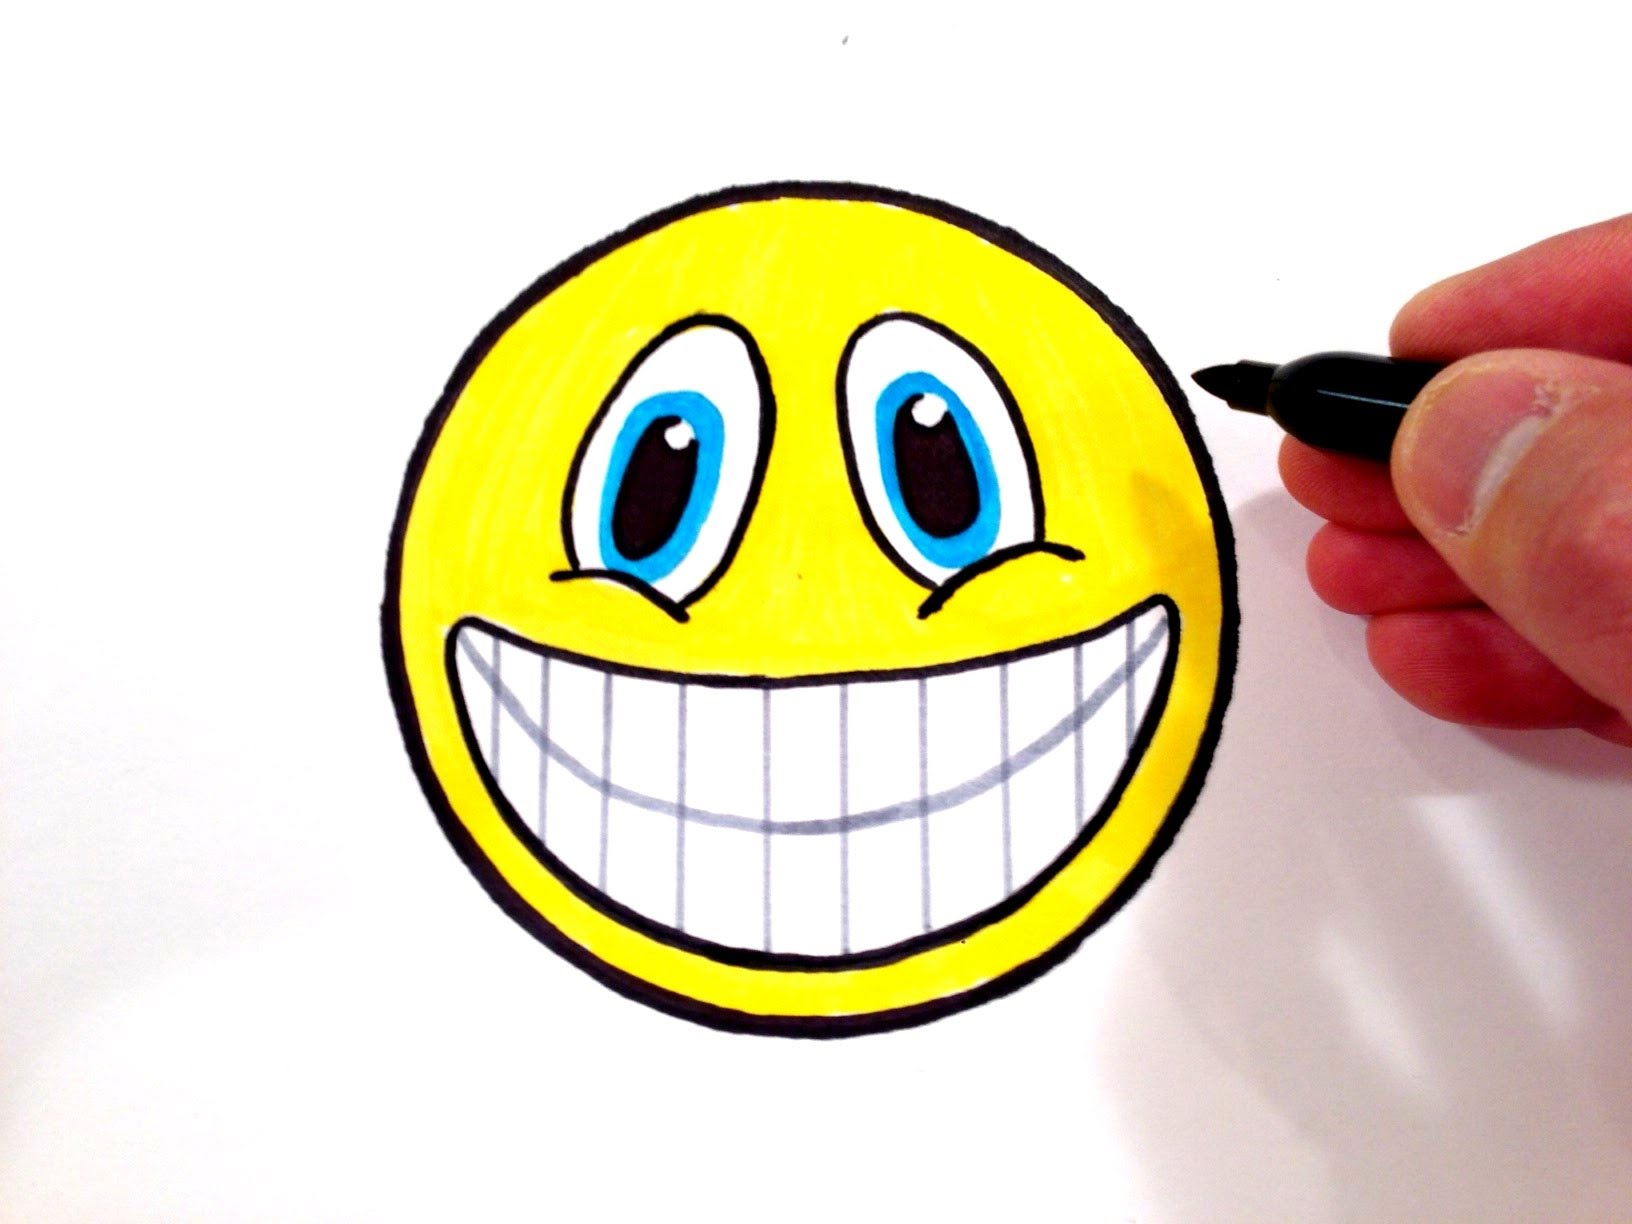 Drawn smile smiley face How  Teeth to a